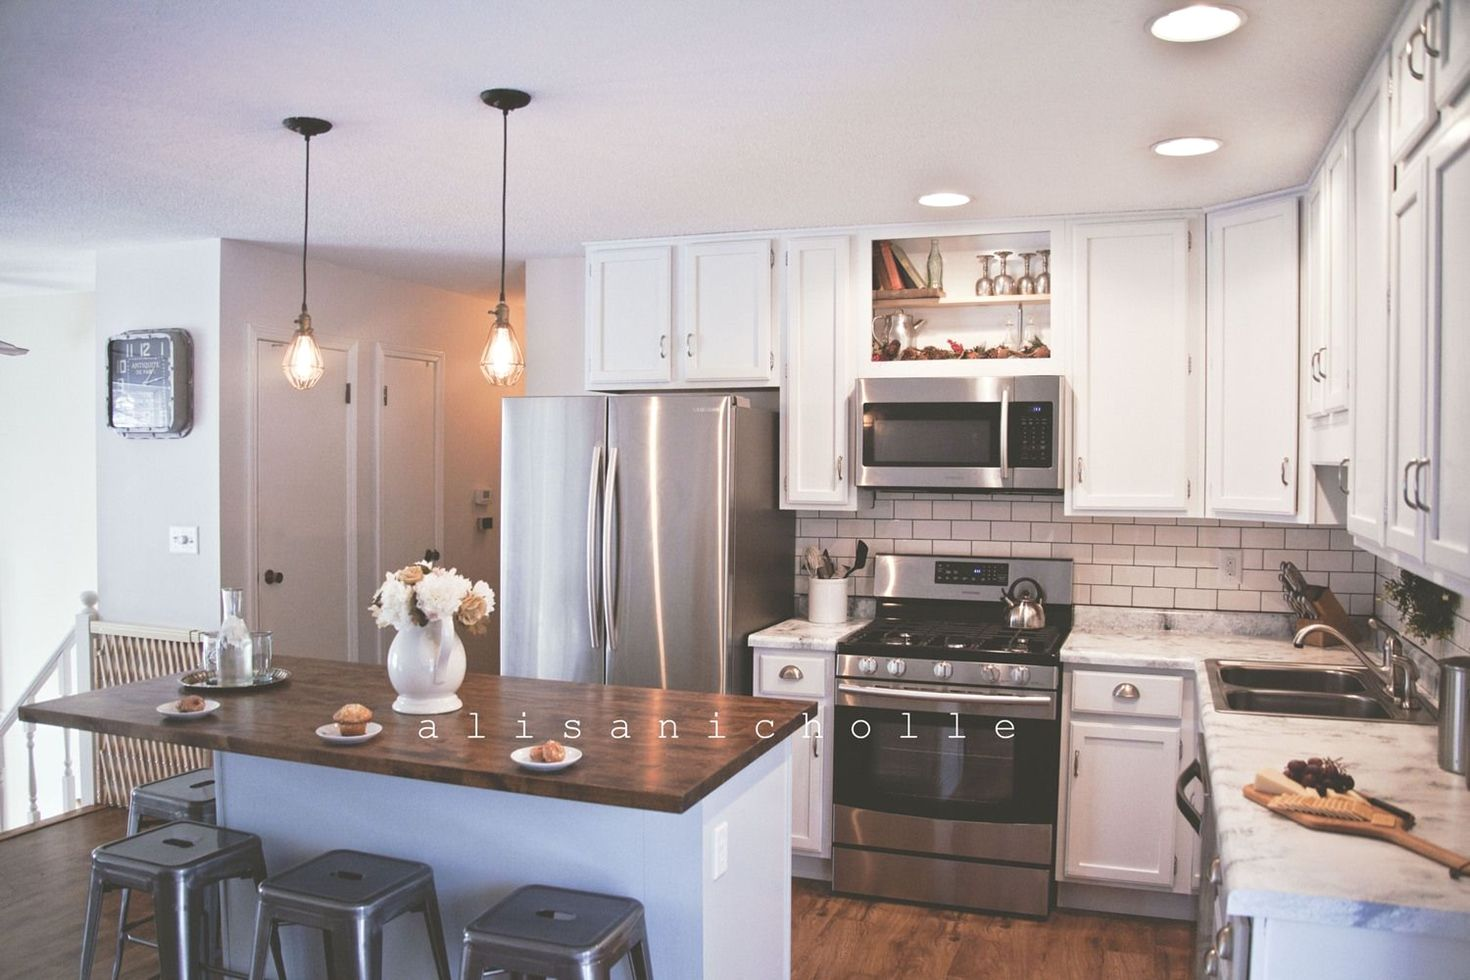 getting started with kitchen remodeling modern kitchen renovation ranch kitchen remodel on kitchen remodel ranch id=41481